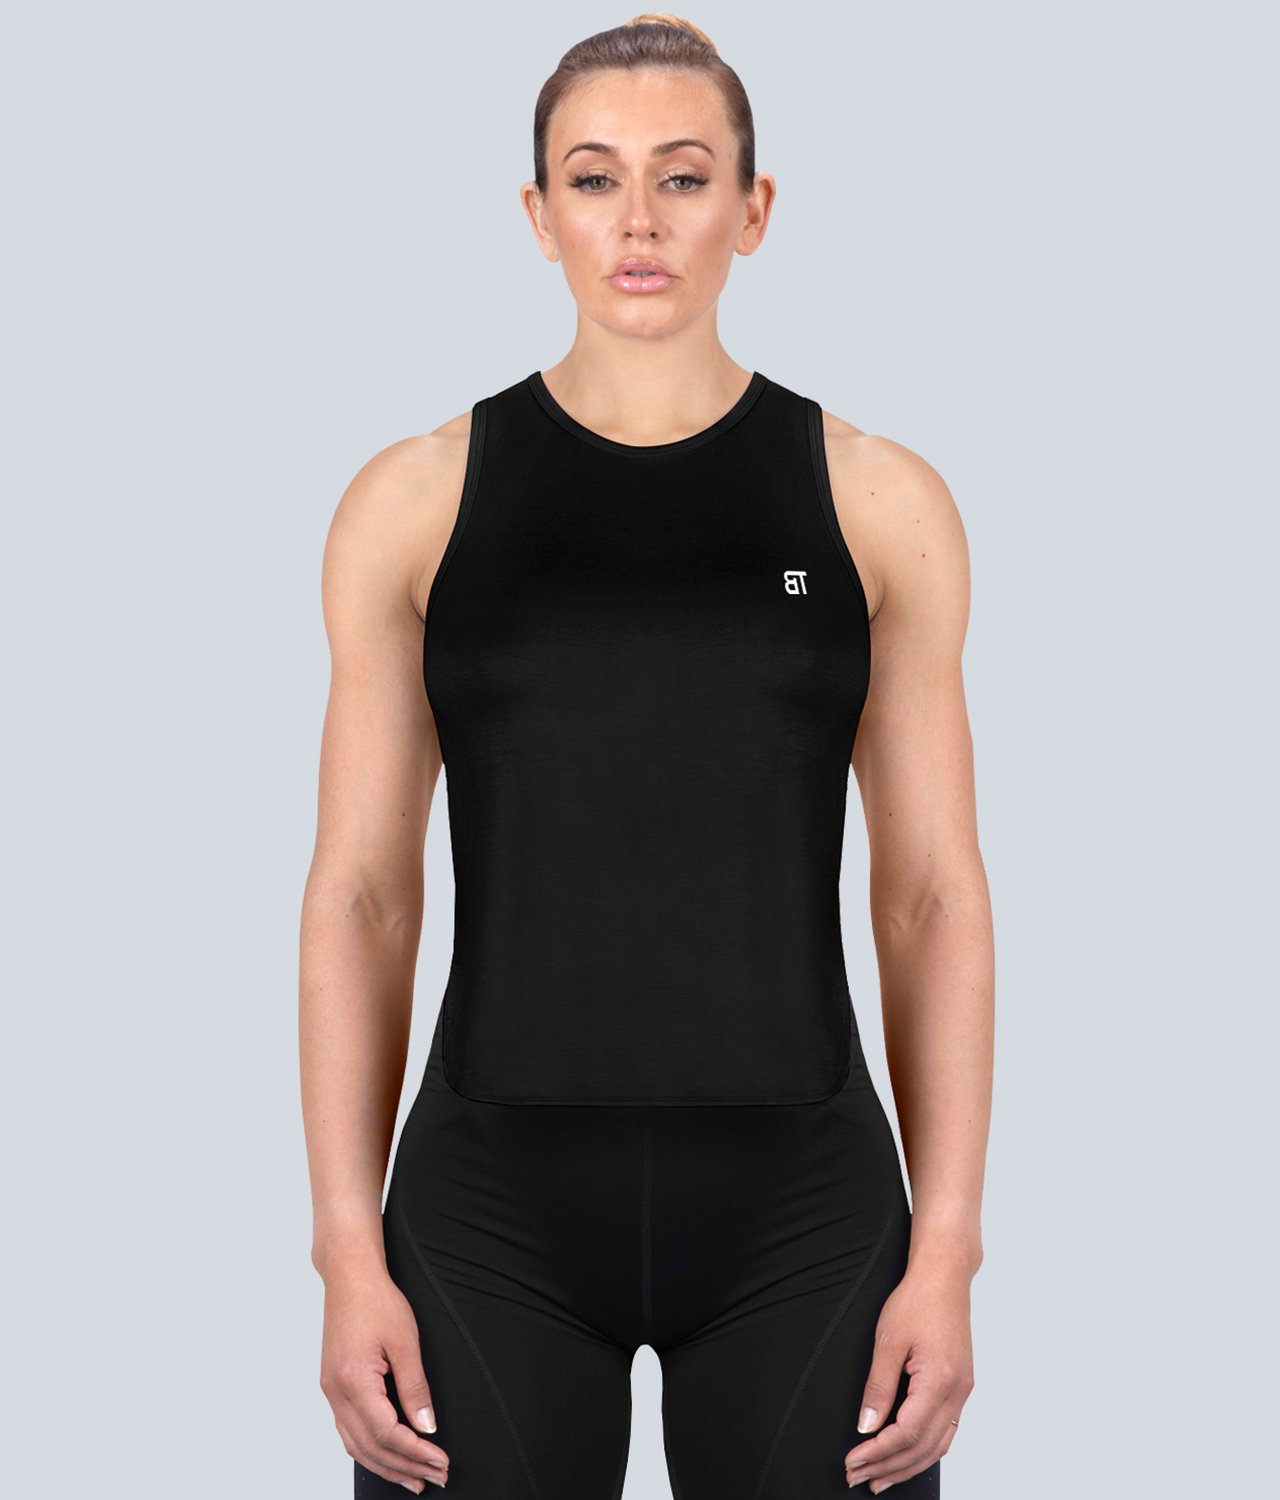 Born Tough United Kingdom Limitless Muscle Flexible Fabric Black Sheer Gym Workout Tank Top for Women